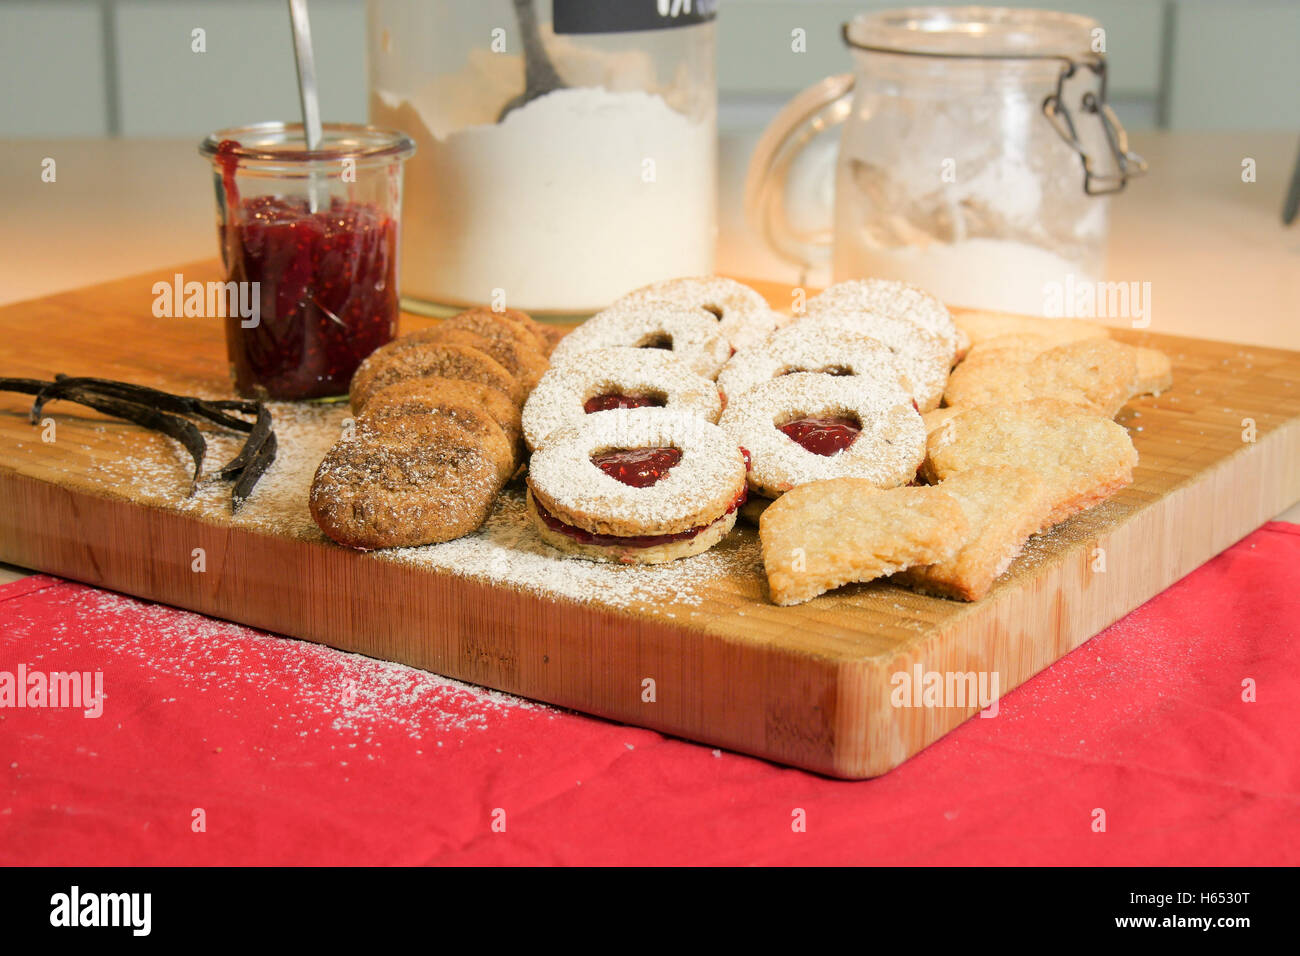 Christmas cookies on a wooden board with jam and a jar of baking powder. - Stock Image